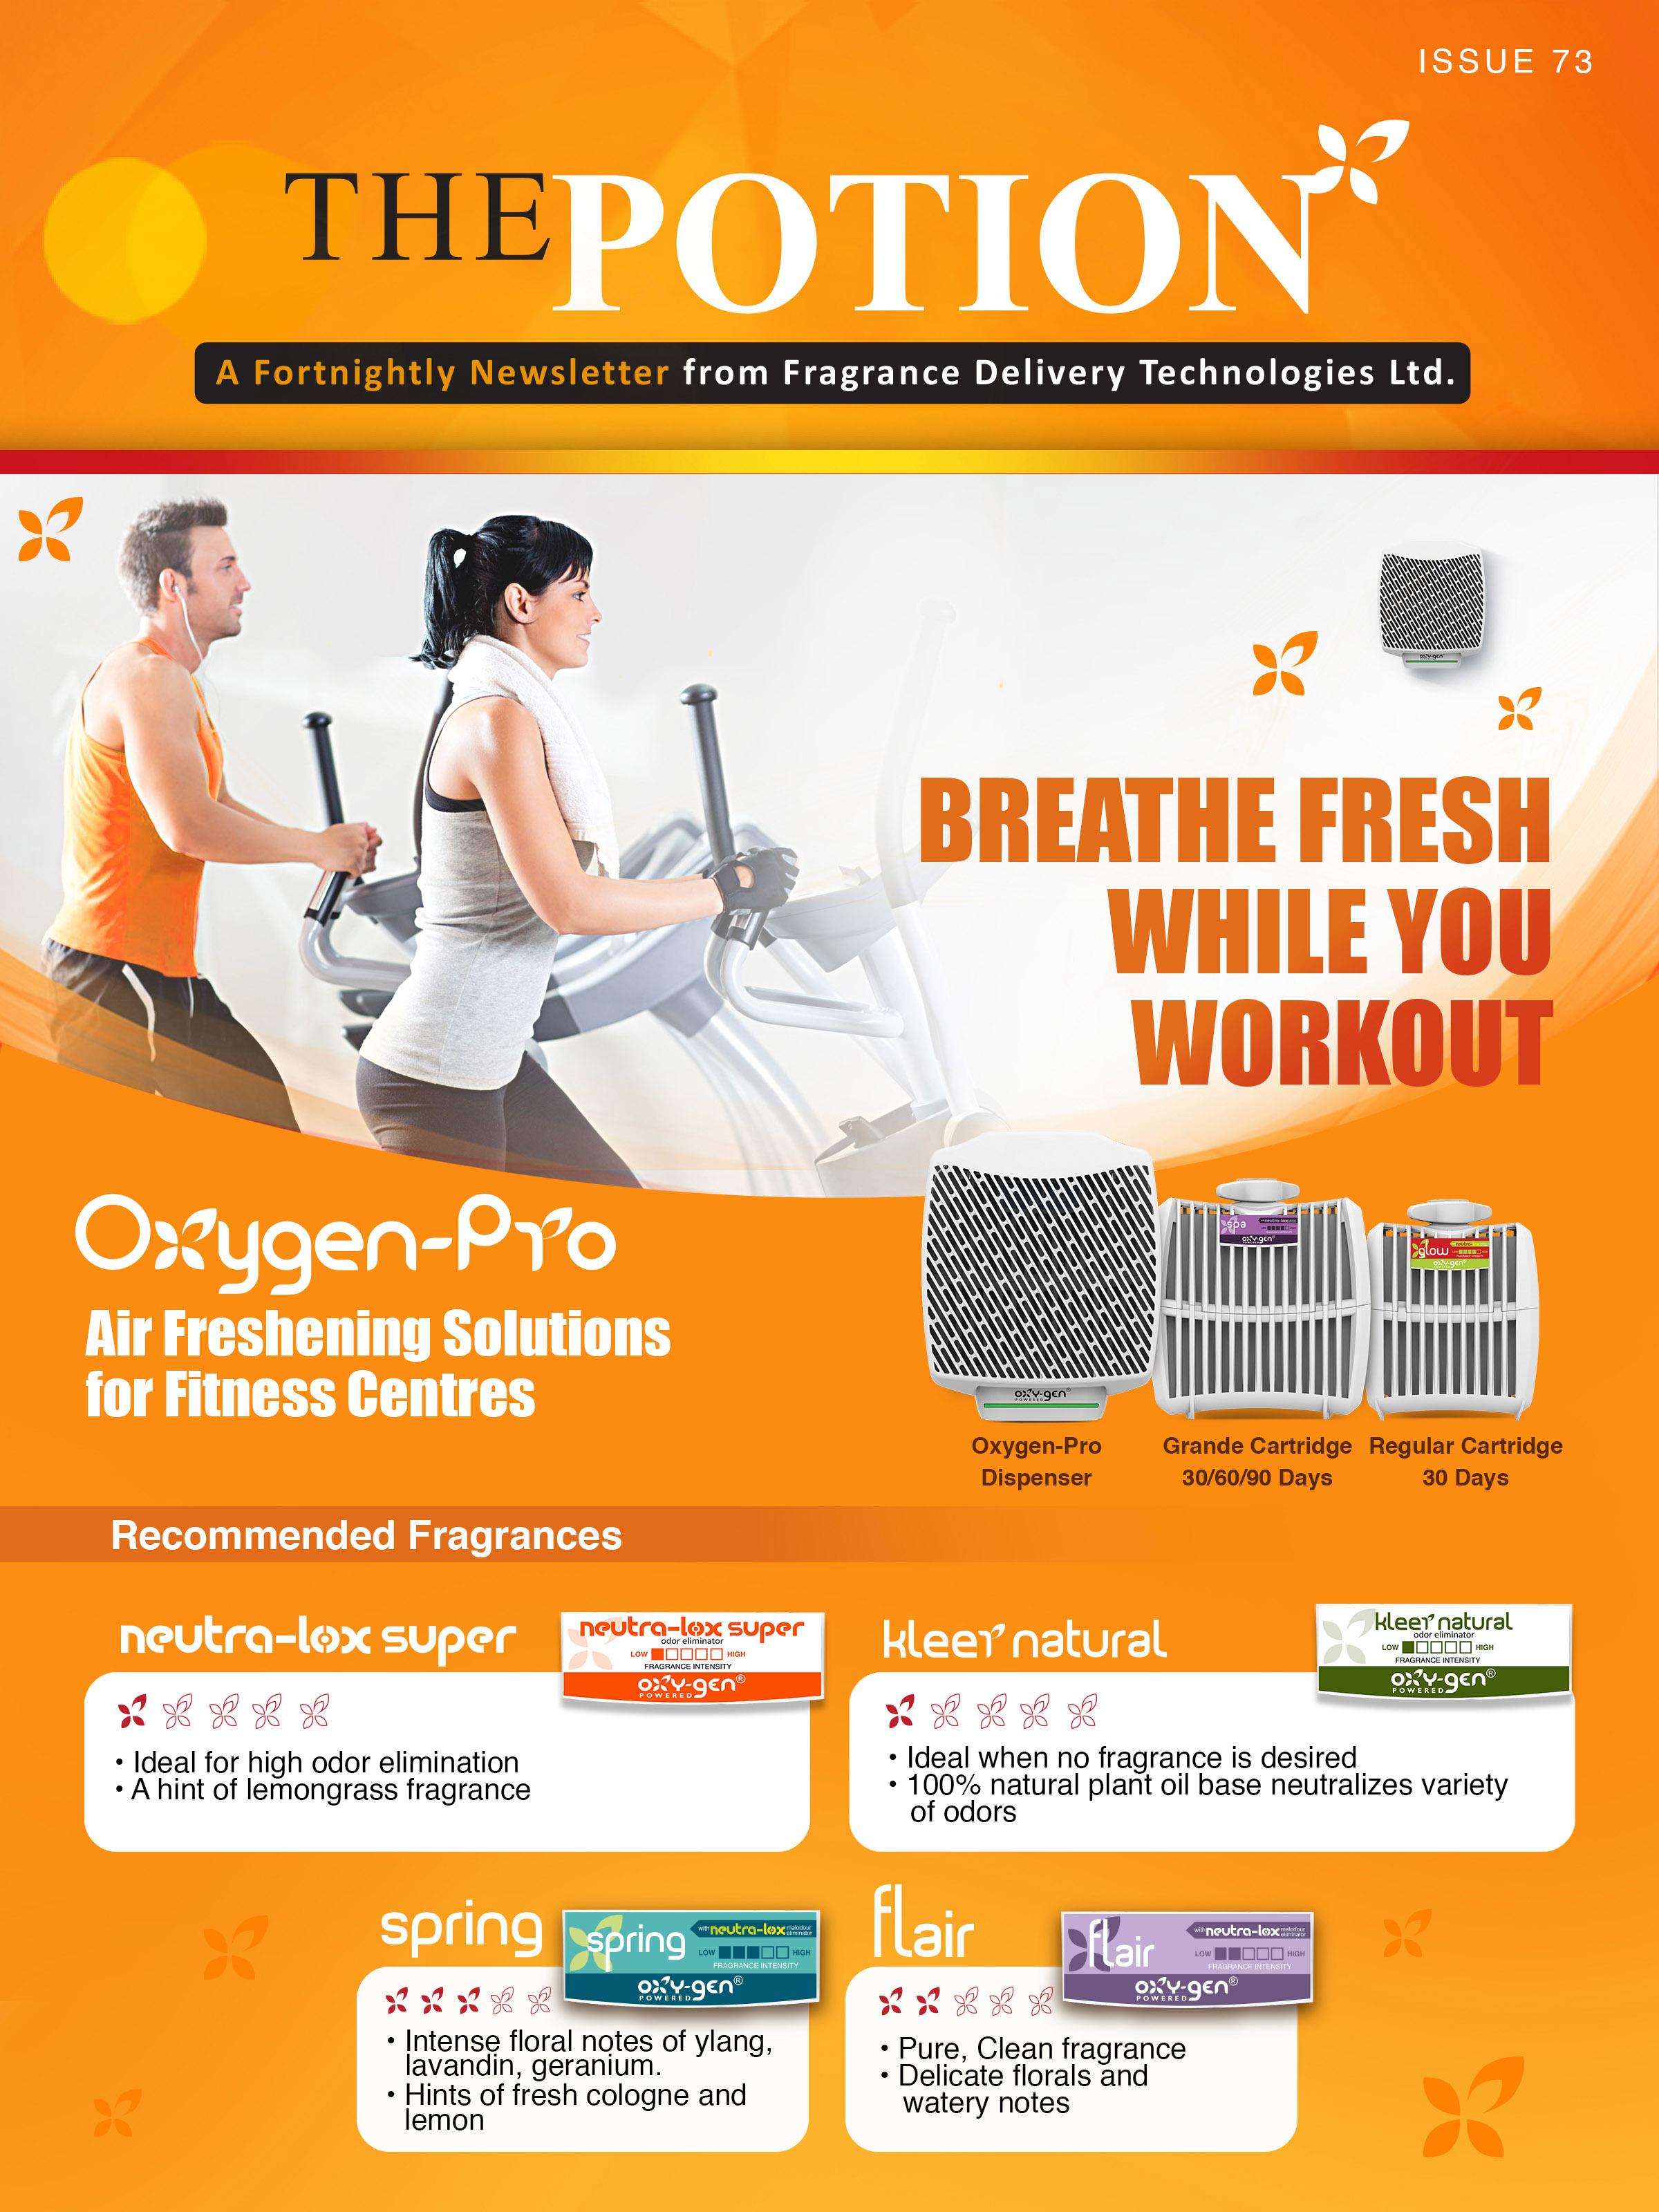 Fitness Special - The Potion Issue 73